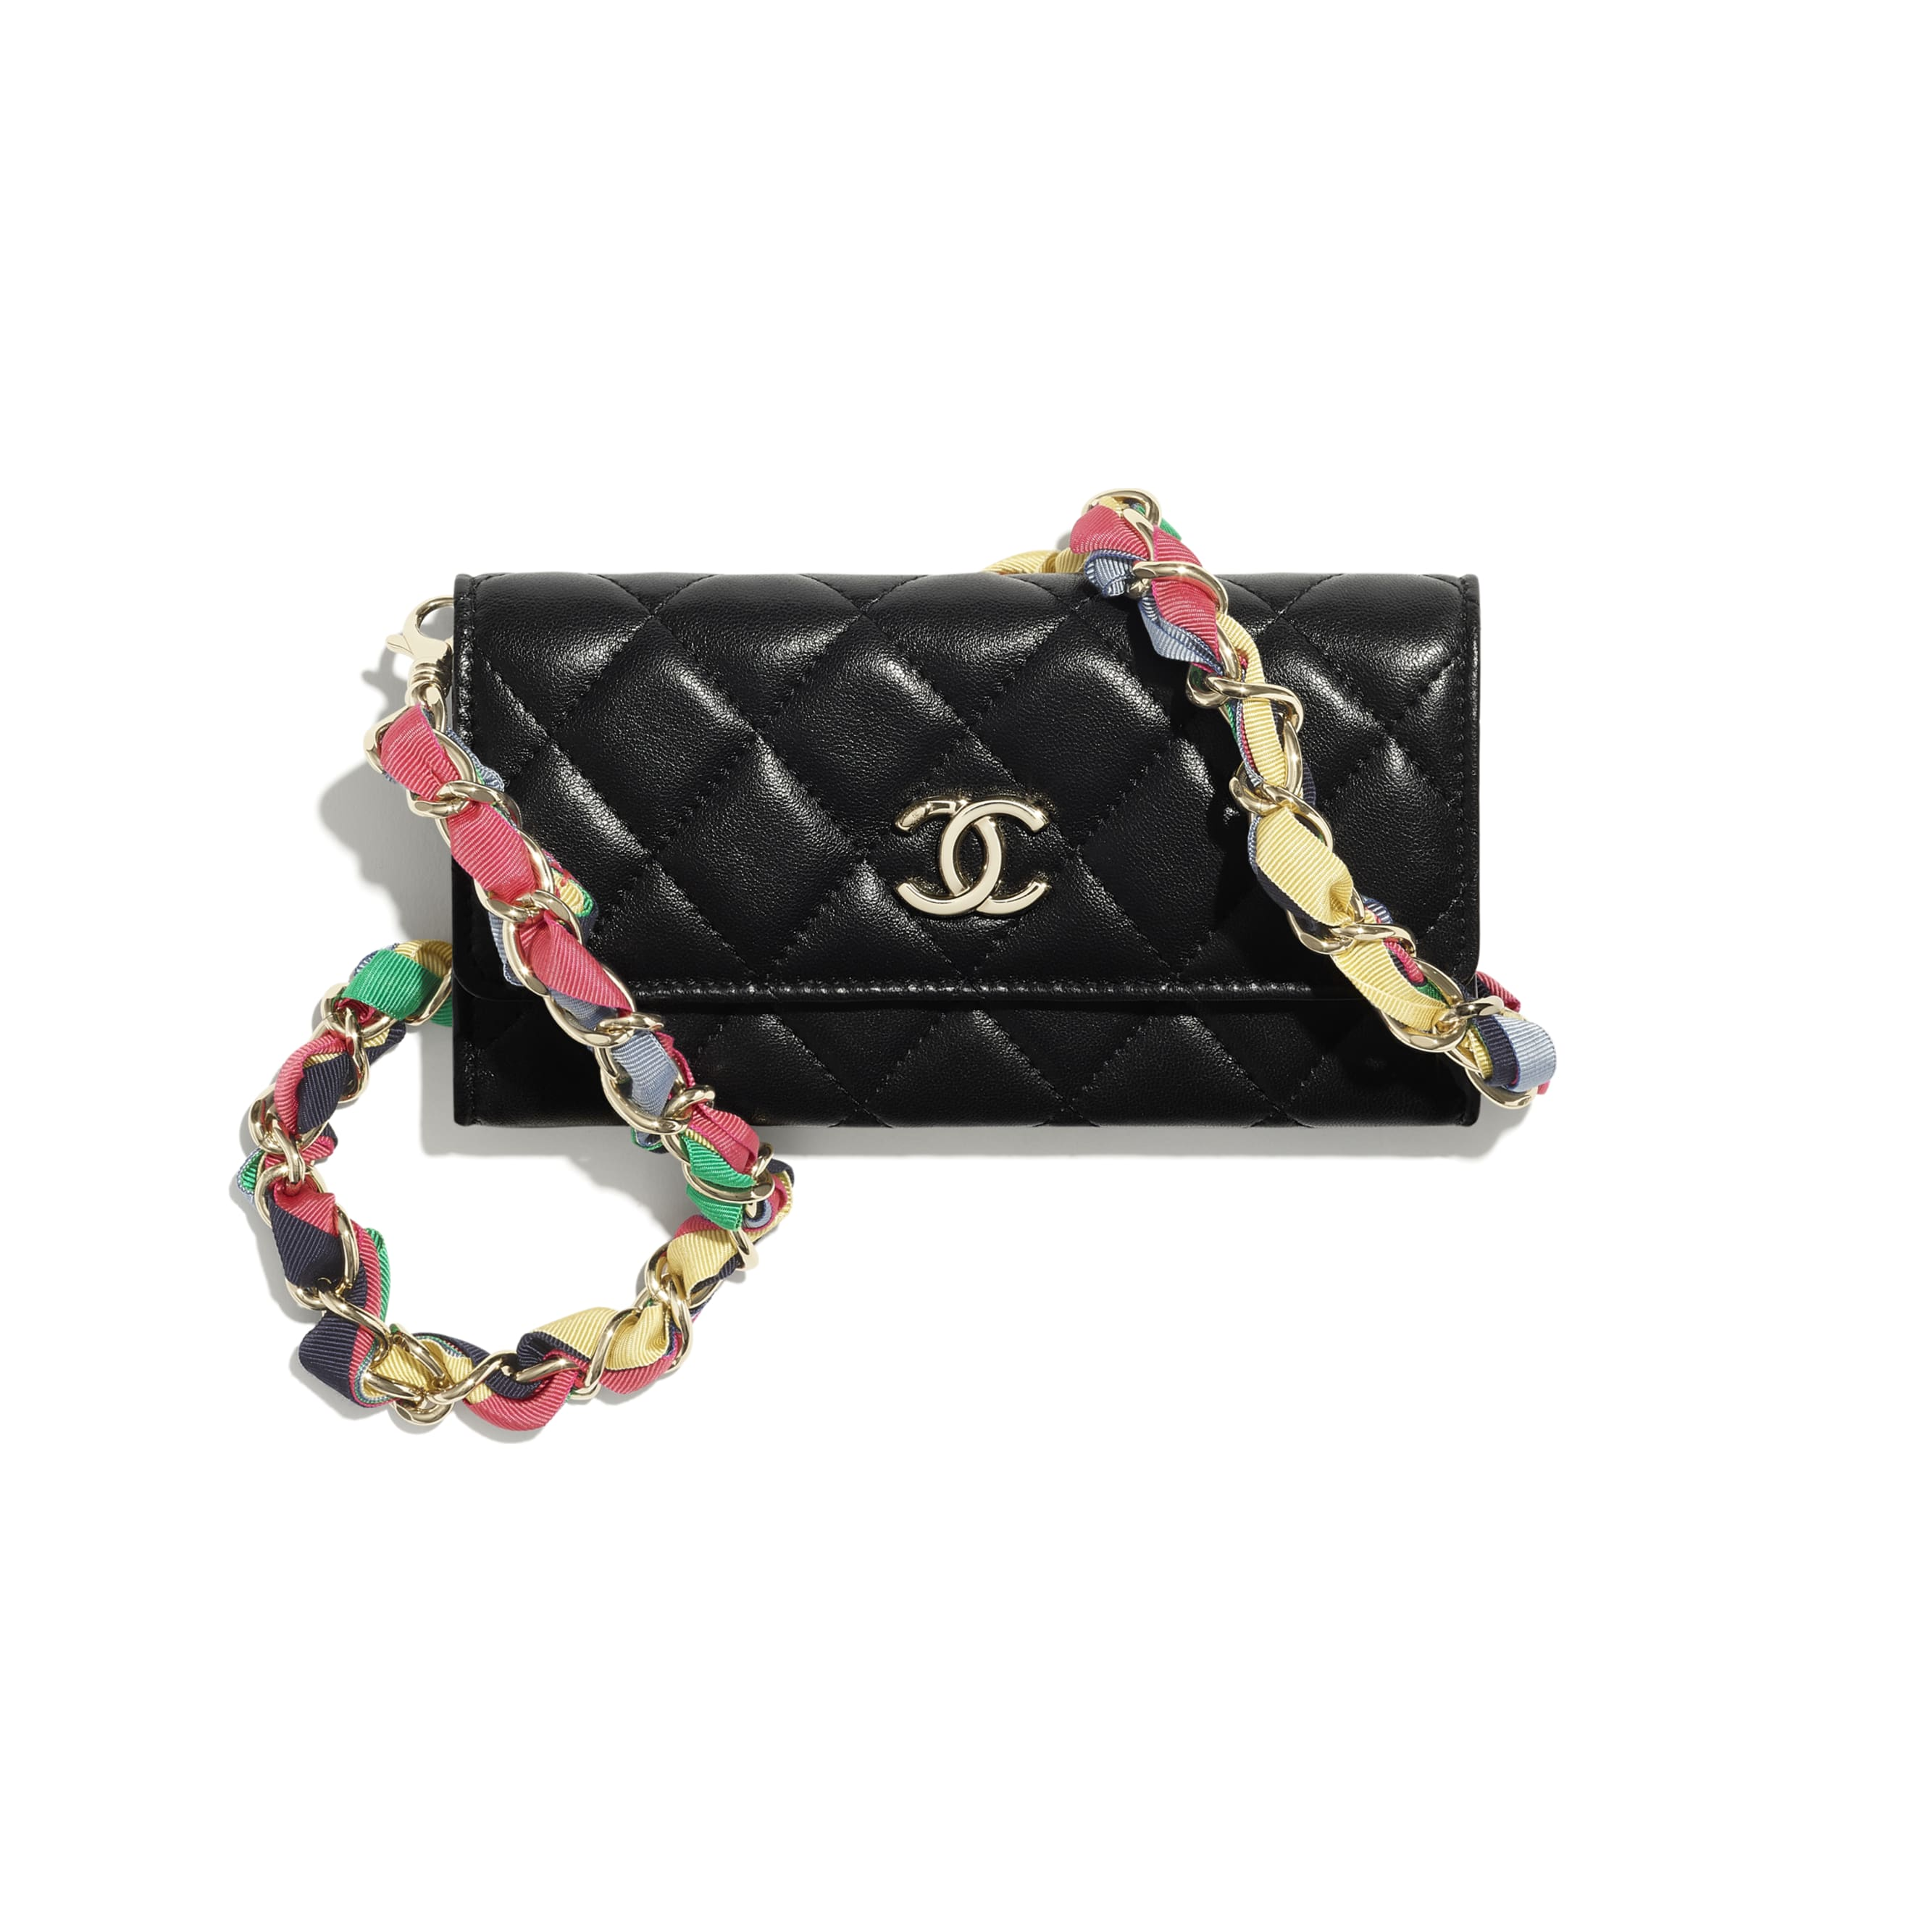 Clutch With Chain - Black - Shiny Lambskin, Ribbon & Gold-Tone Metal - CHANEL - Default view - see standard sized version